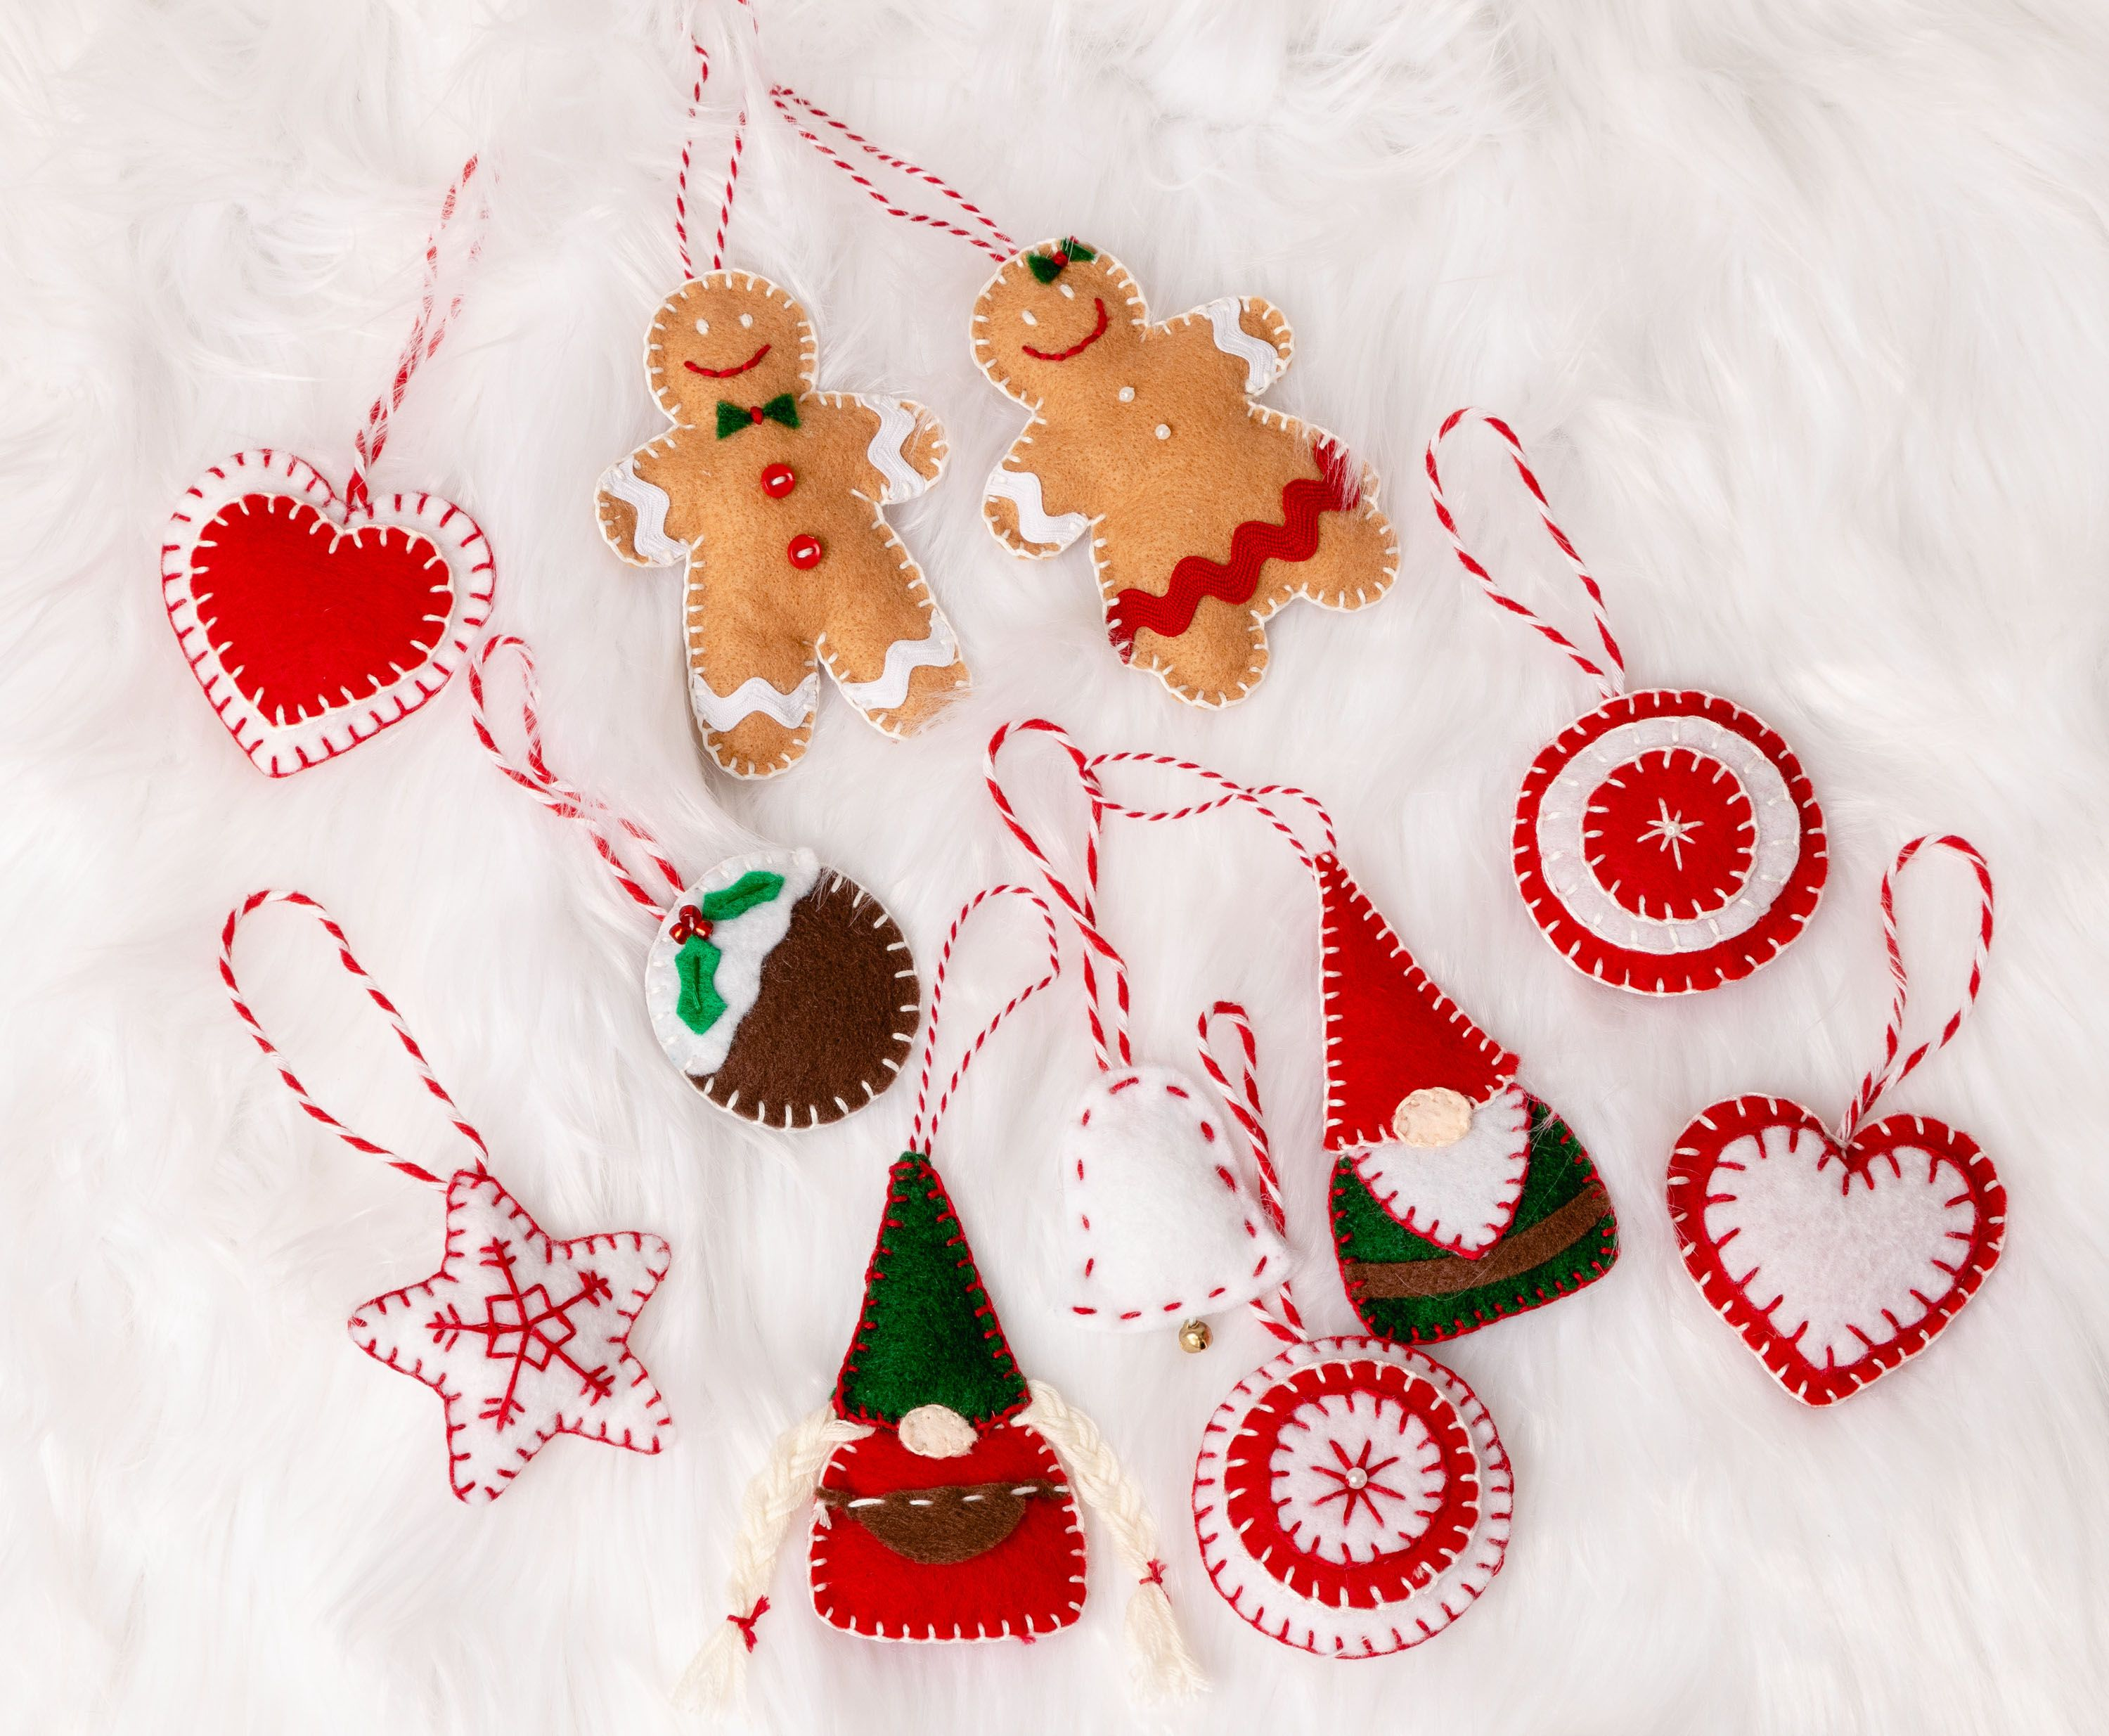 Easy Felt Christmas Ornaments Felt Decorations To Make Gnomes Diy Felt Christmas Ornaments Felt Ornaments Diy Felt Christmas Ornaments